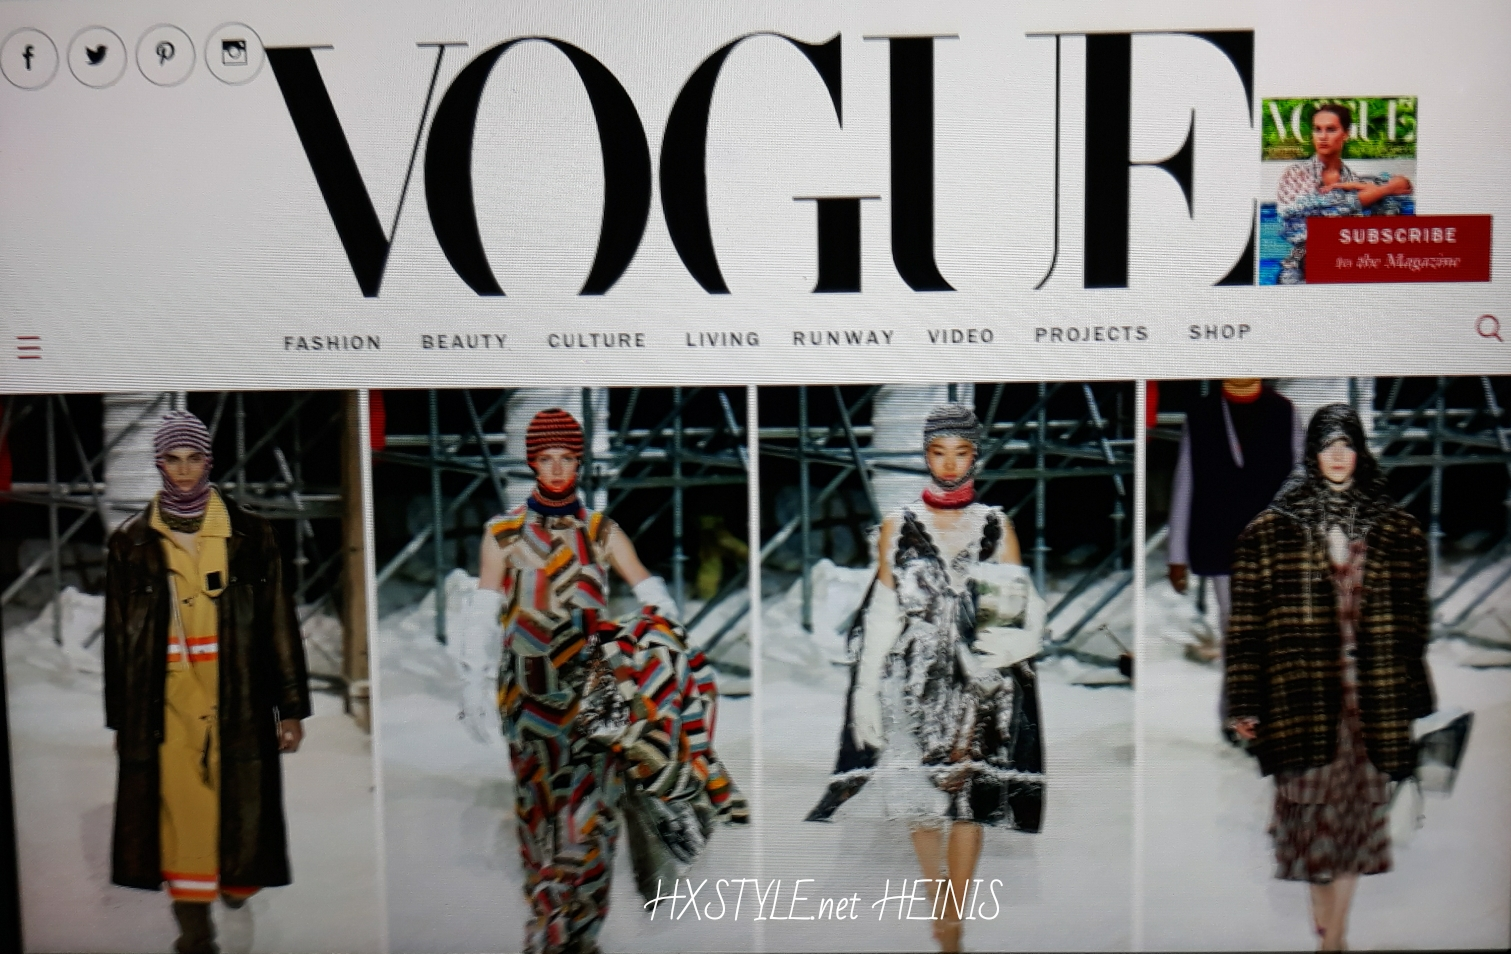 VOGUE NEWS&TRENDS. WORLD FASHION PHIL OH's STREET STYLES, Photos, Make Up Style, ENJOY Valentines Day, Vogue&Me since 2015 -15.2.2018, New York Times. Favourite… HXSTYLE.net HEINIS